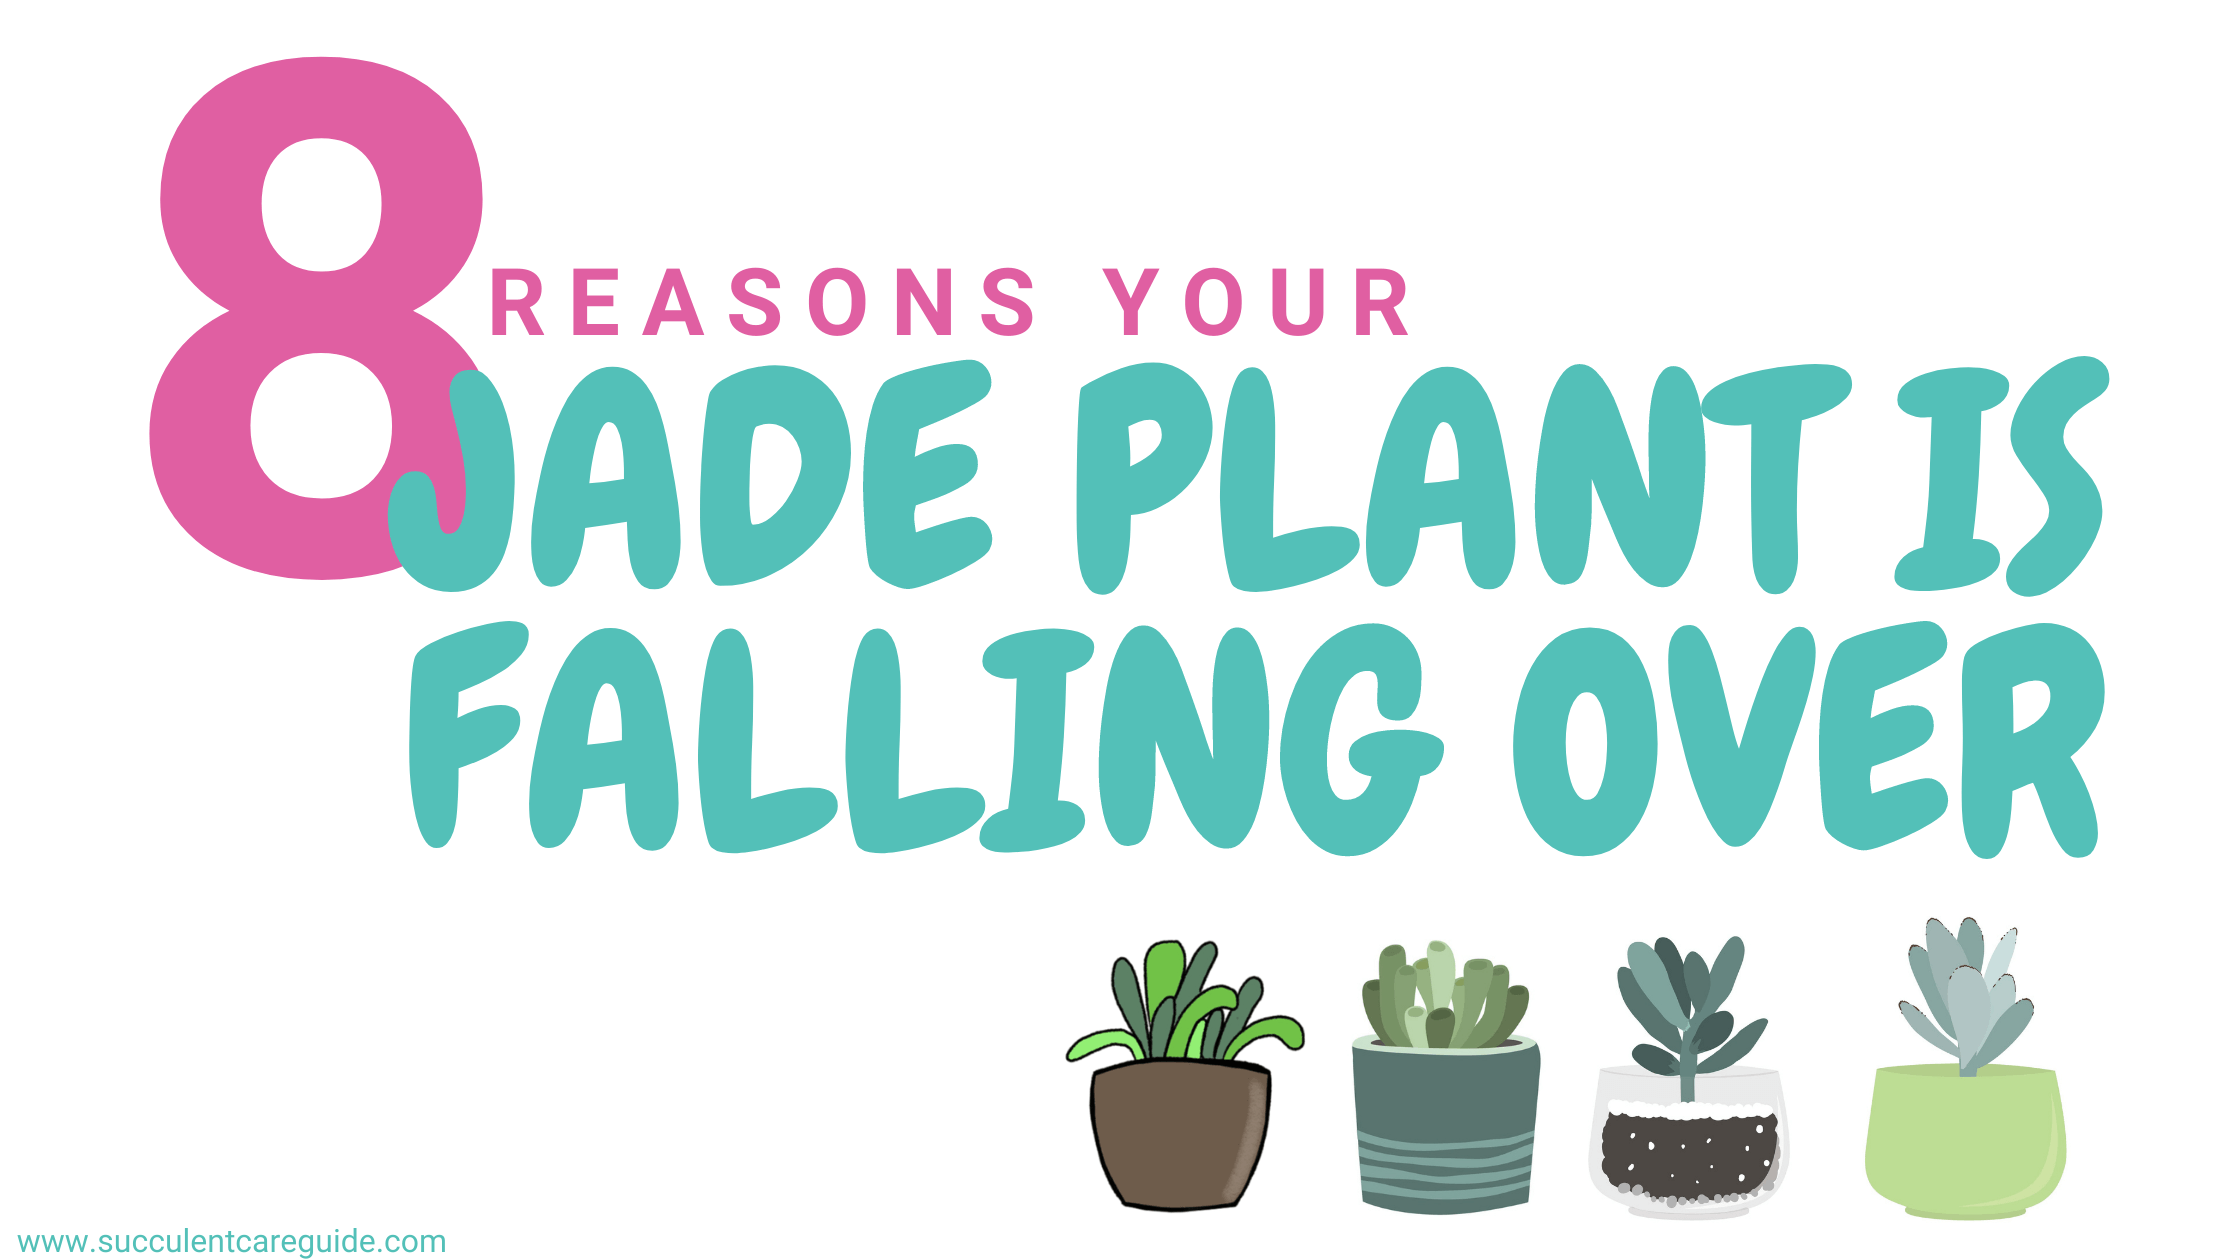 jade plant falling over